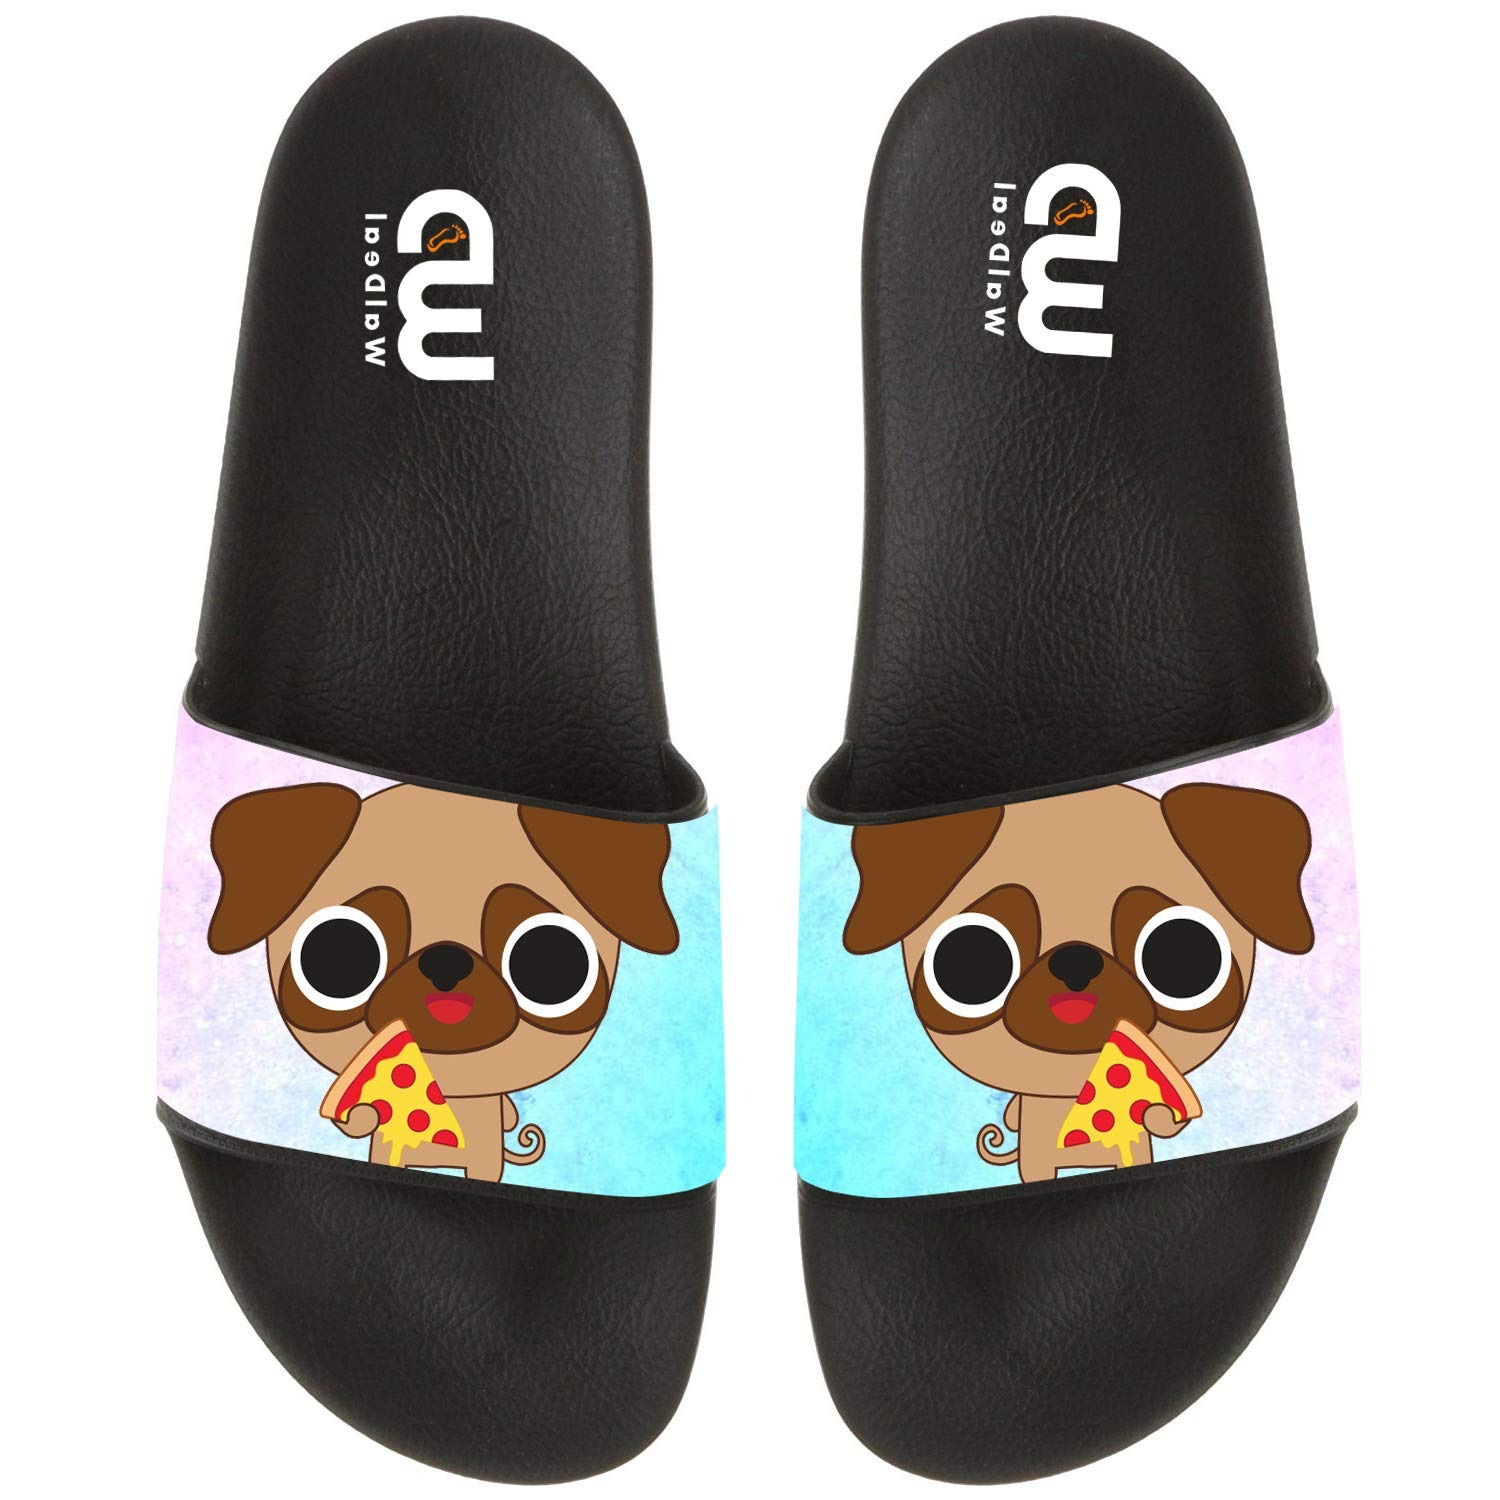 Cartoon Pug with Pizza Print Summer Slide Slippers For Men Women Kid Indoor Open-Toe Sandal Shoes